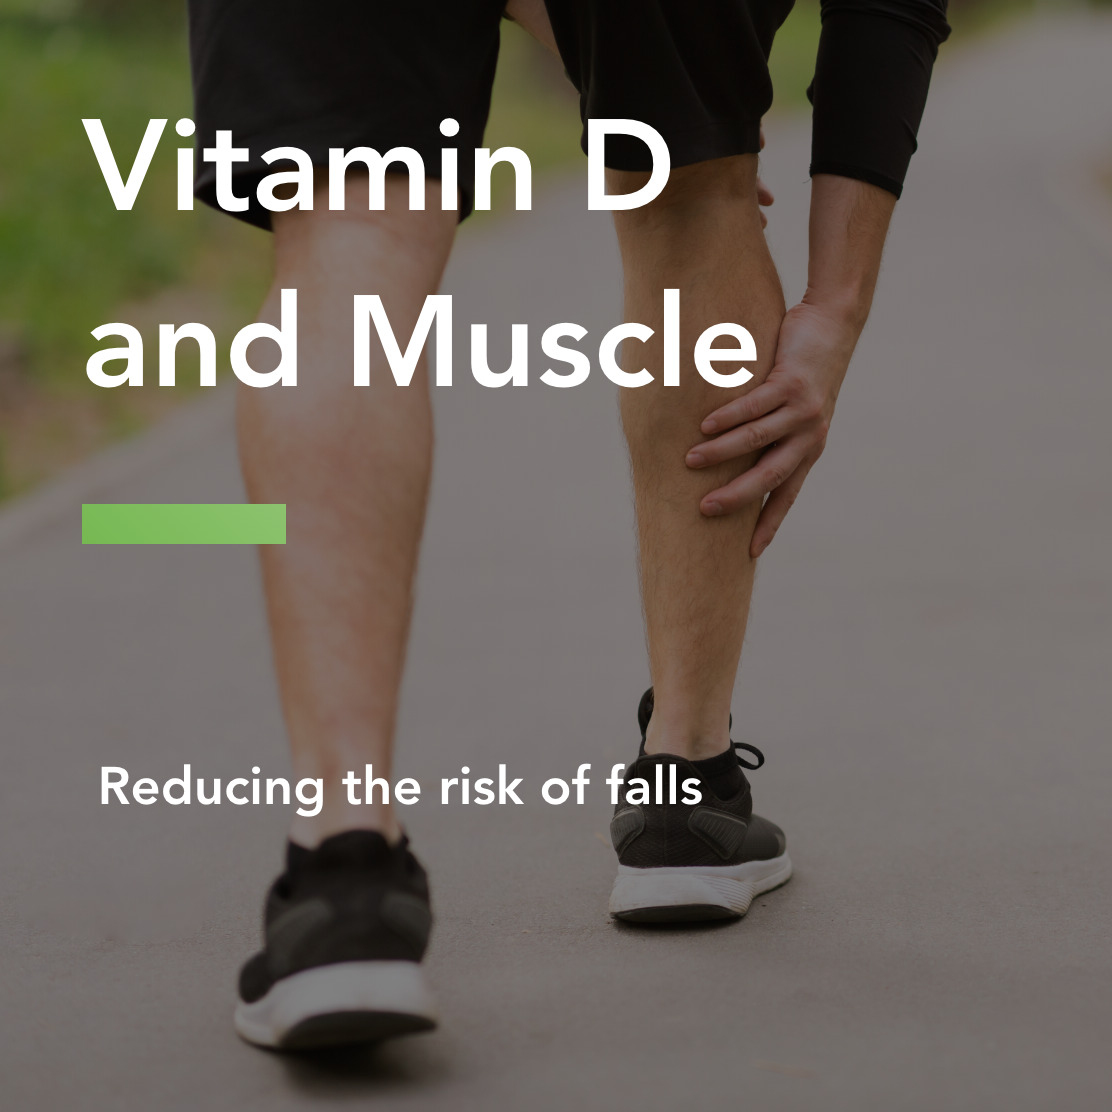 Vitamin D and muscle title